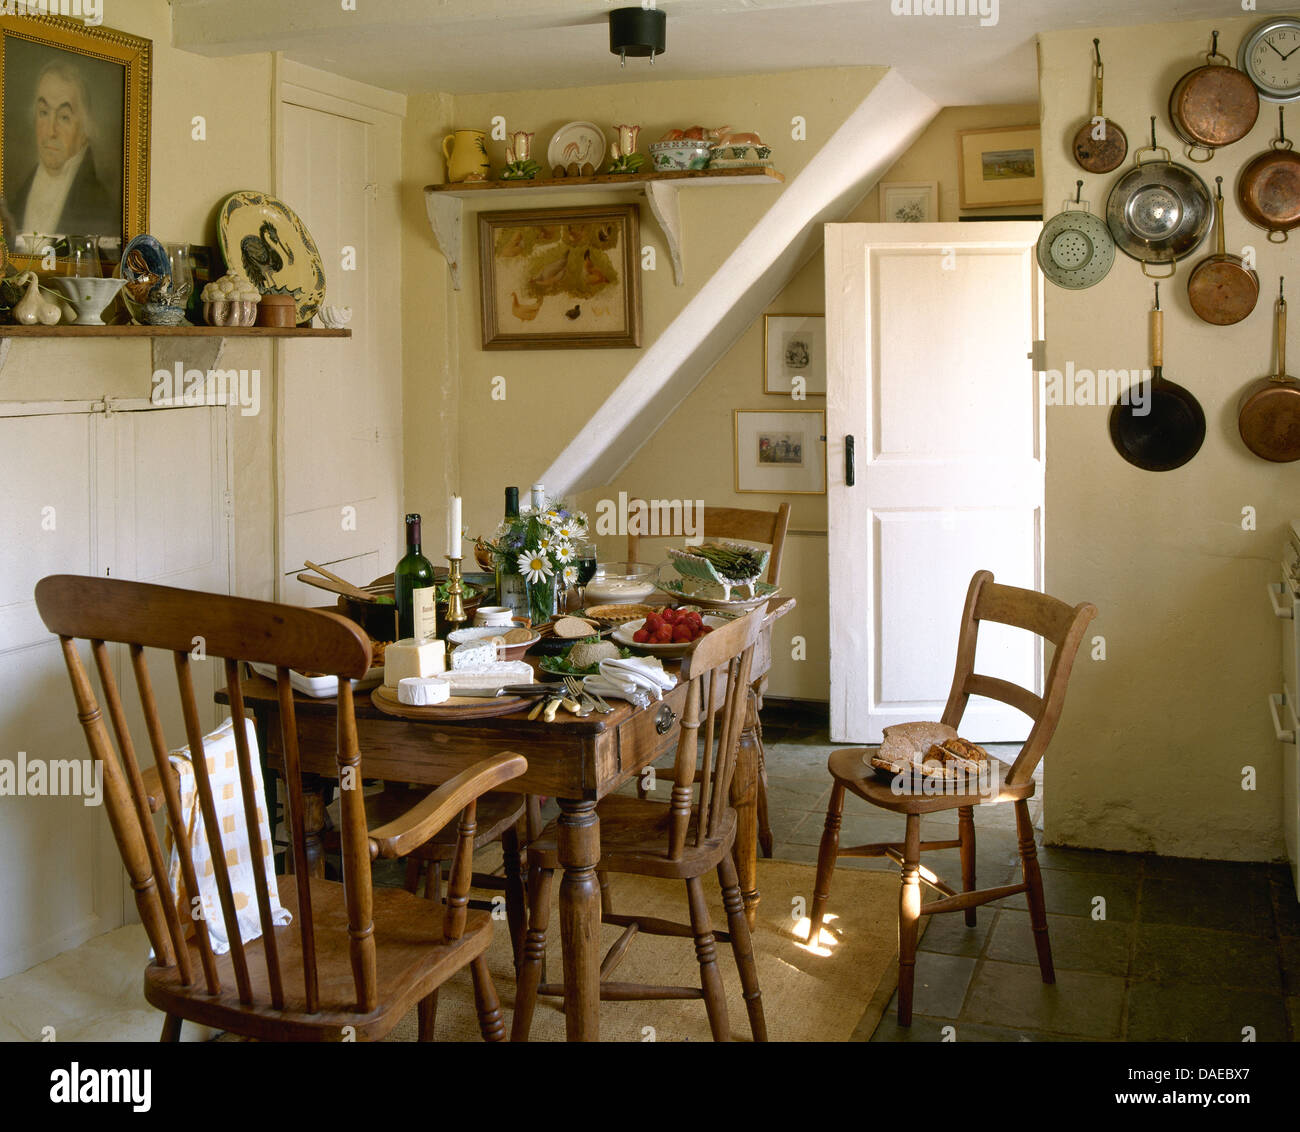 cottage kitchen furniture. Simple Wooden Chairs And Old Pine Table Set For Lunch In Cottage Kitchen With Pans Hanging On The Wall Furniture A